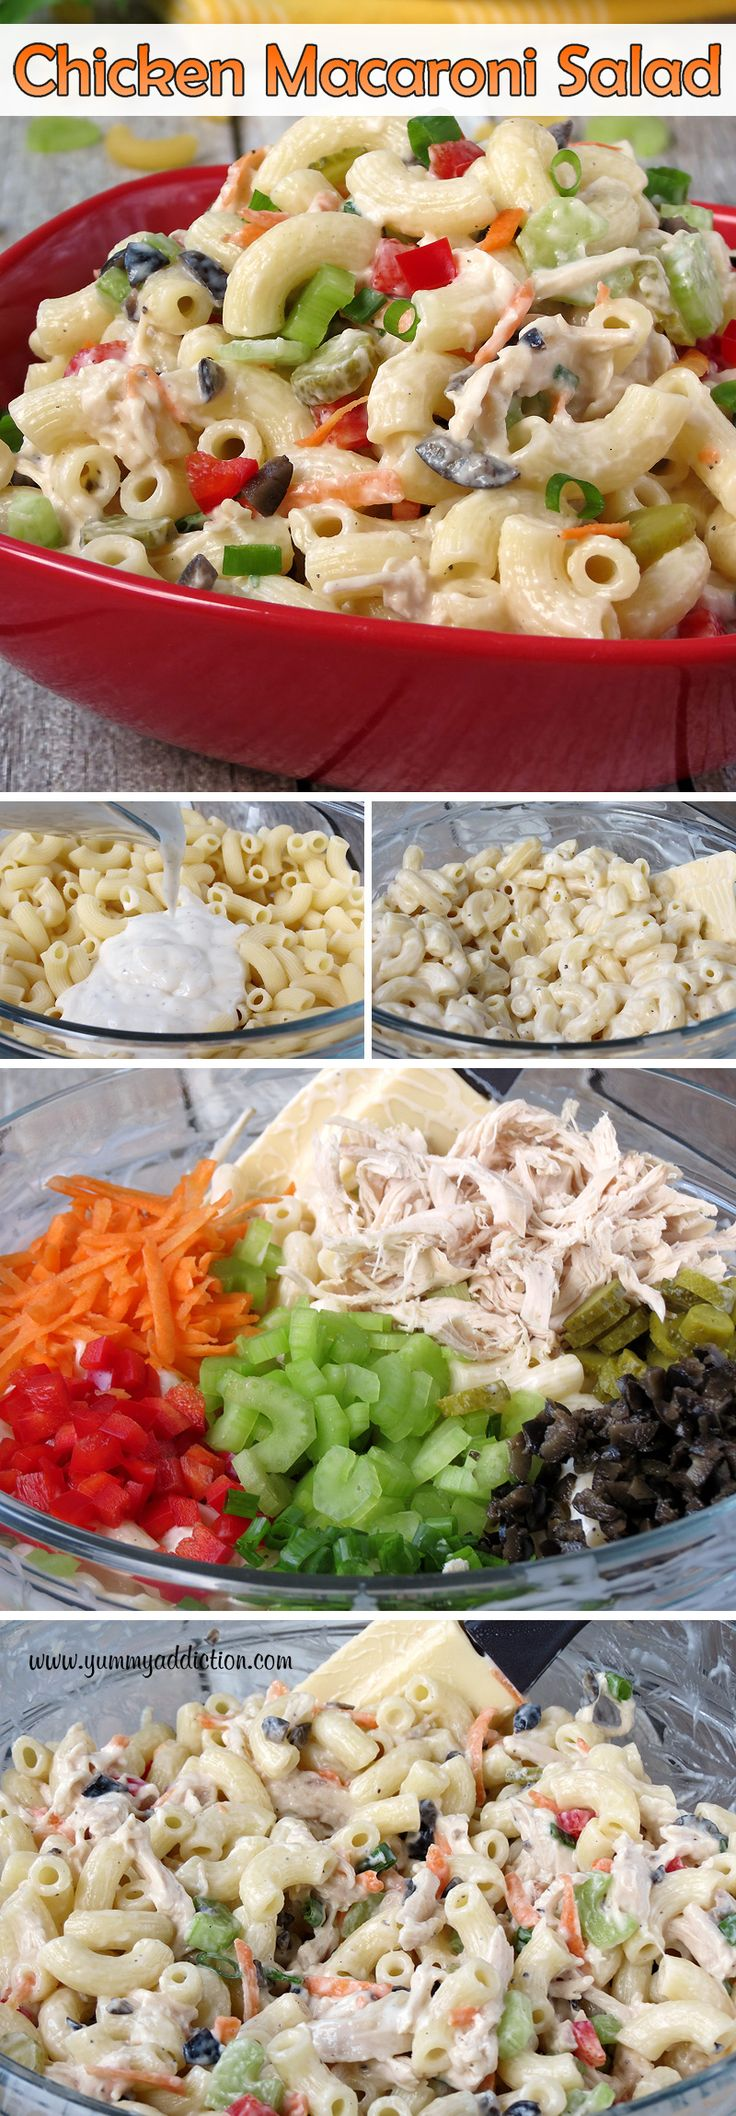 Chicken Macaroni Salad | YummyAddiction.com